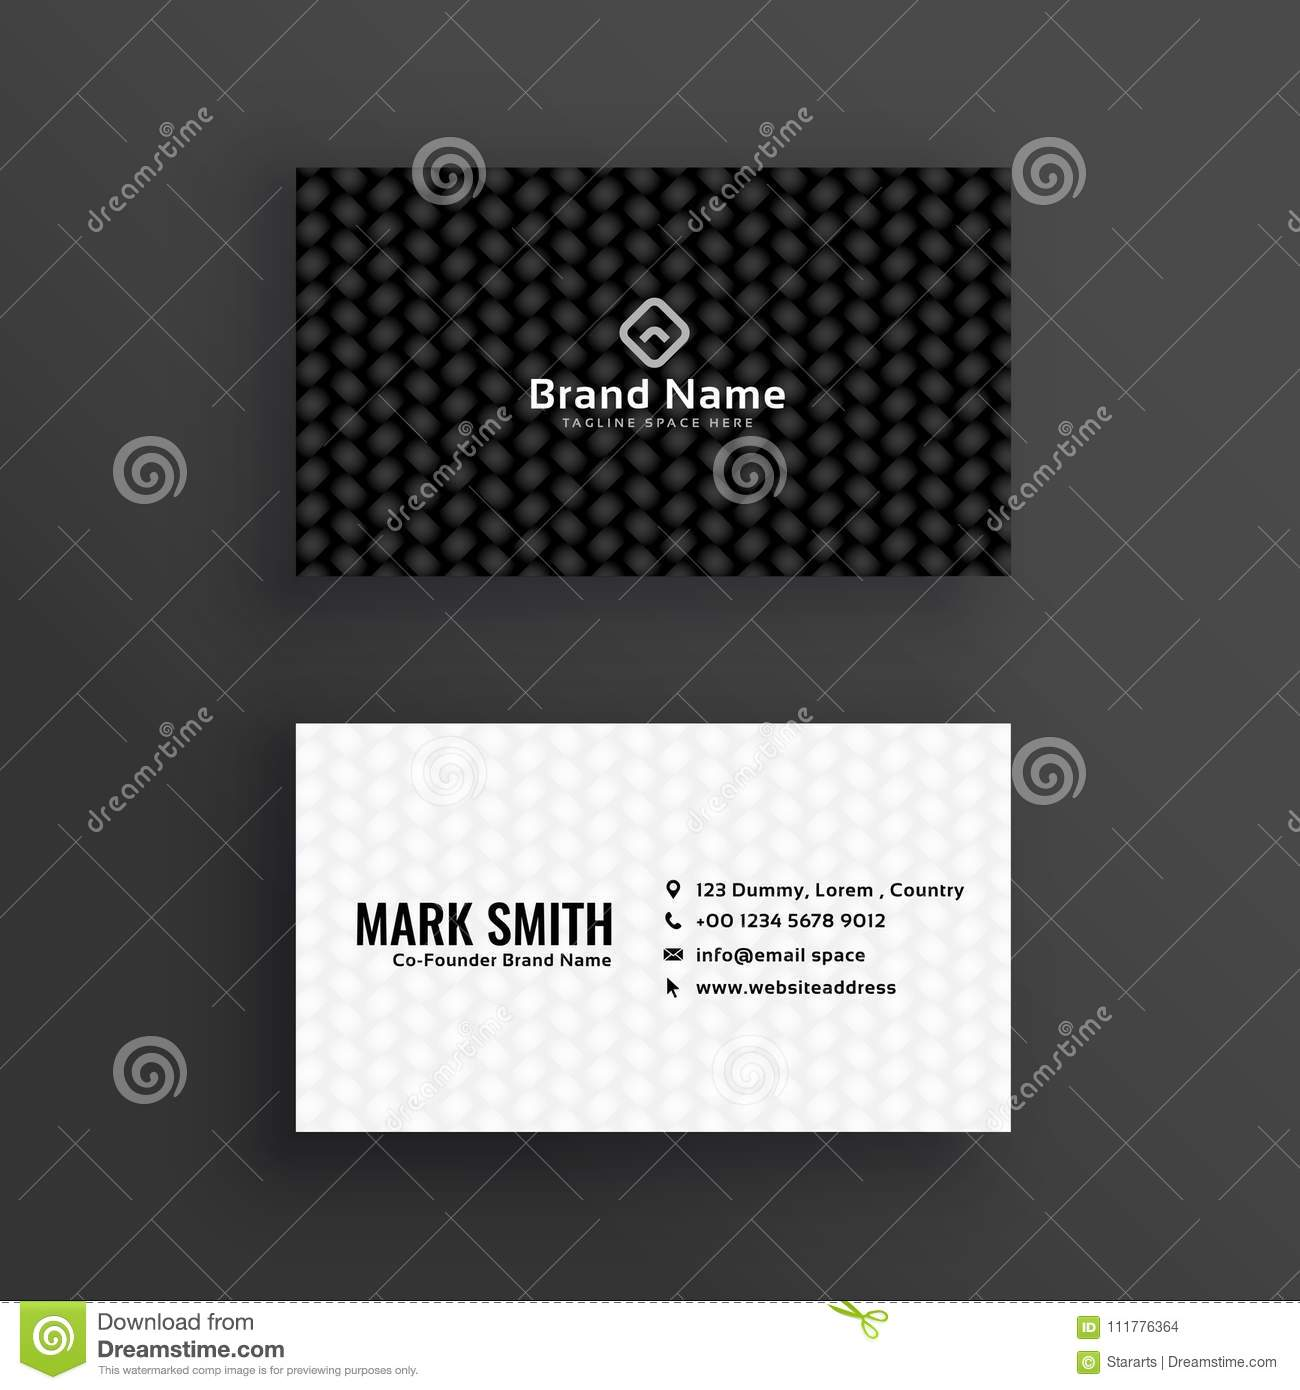 Simple black and white dark business card design